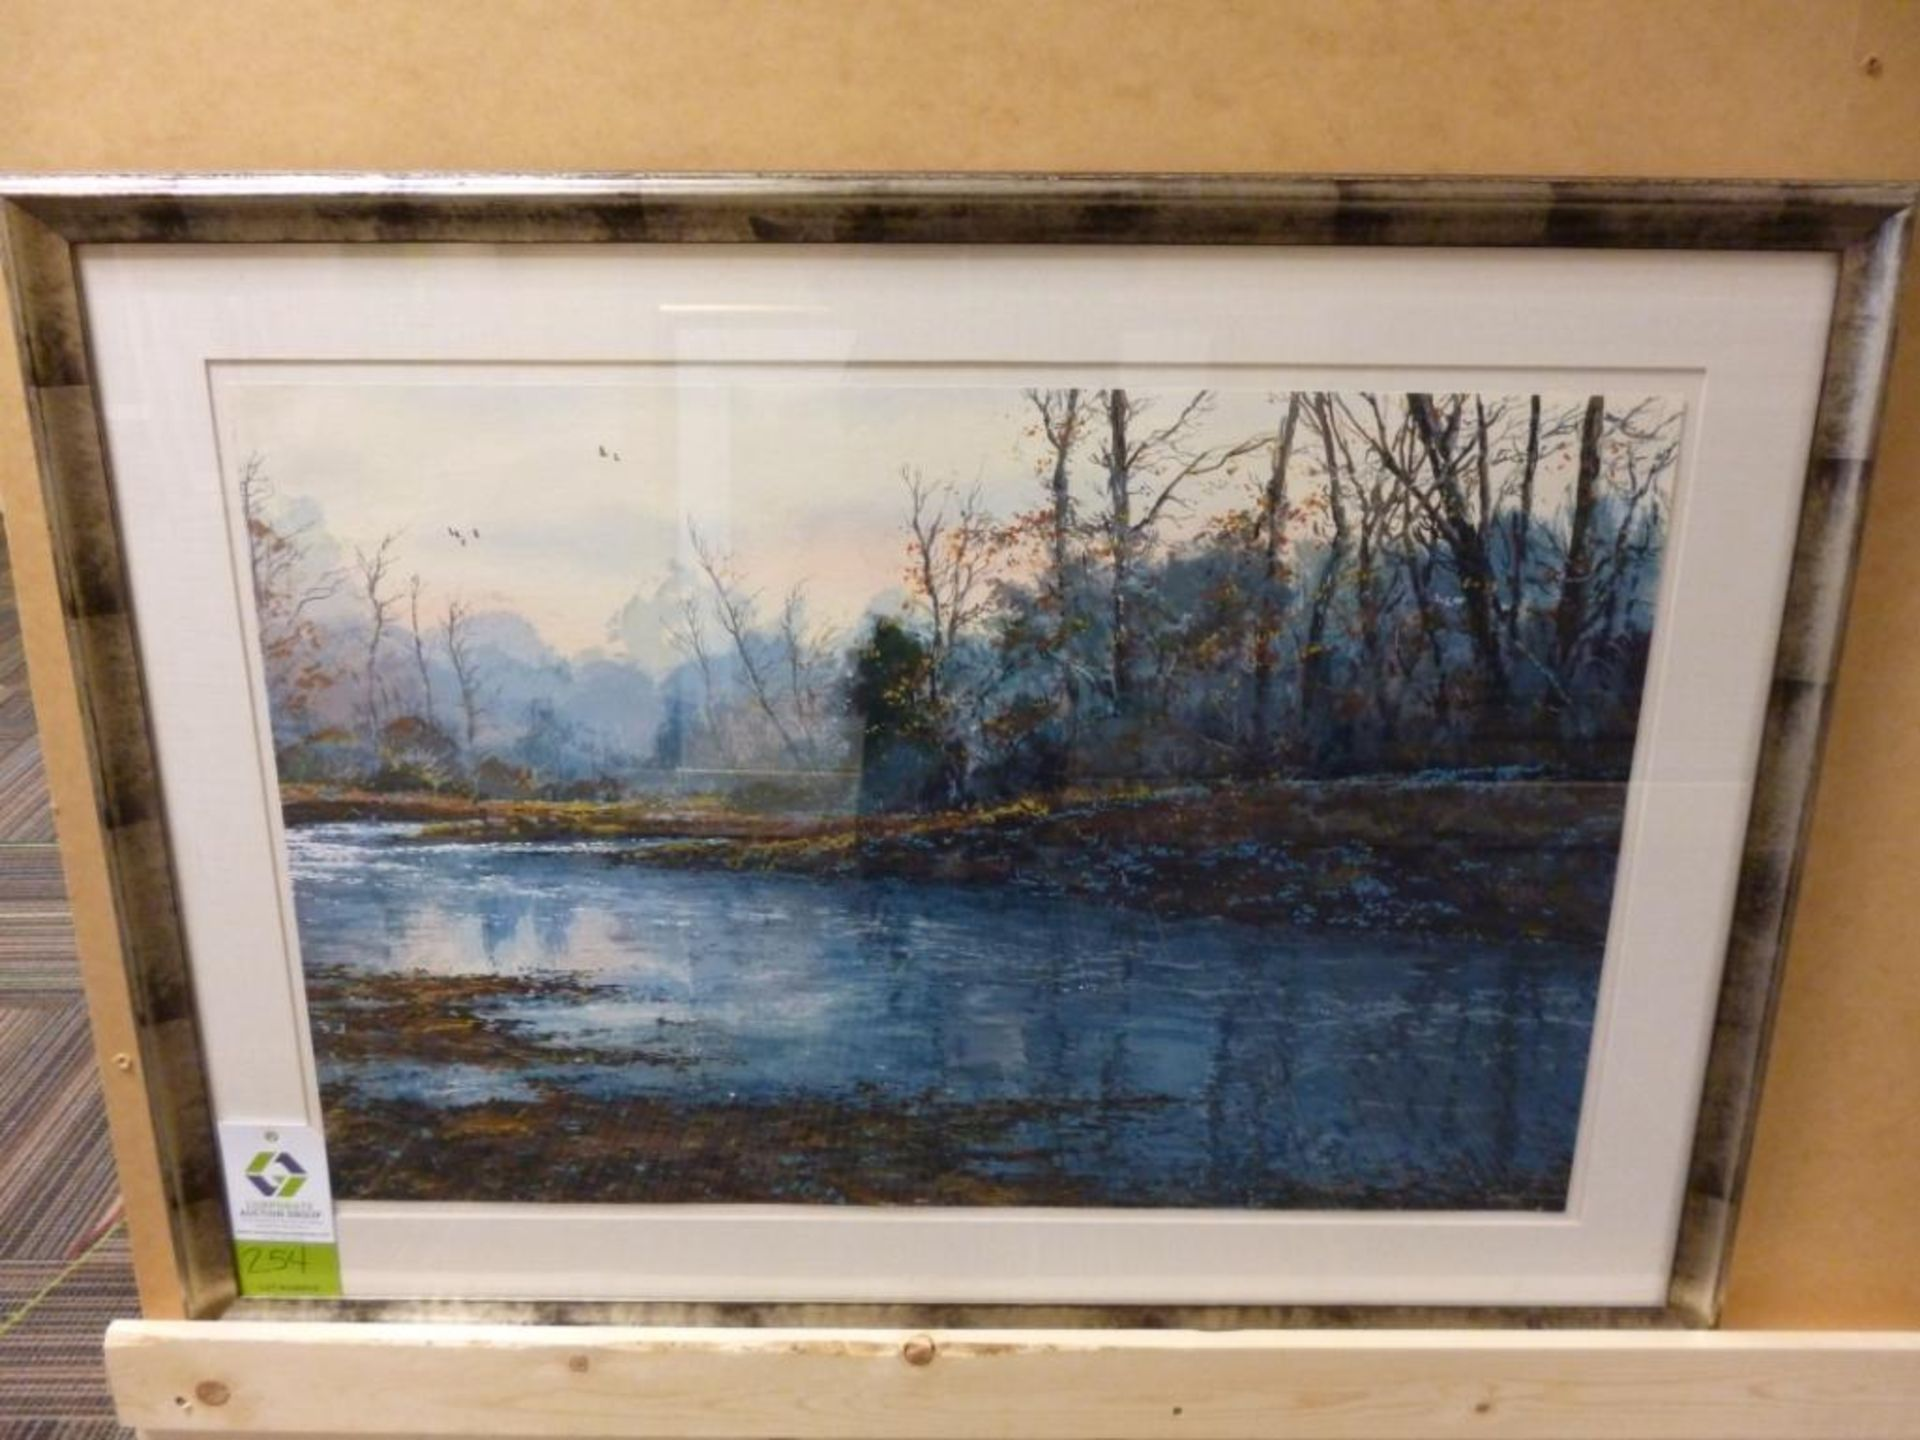 Lot 3254 - Artist: Schofield size: 48 x 35 Notes: